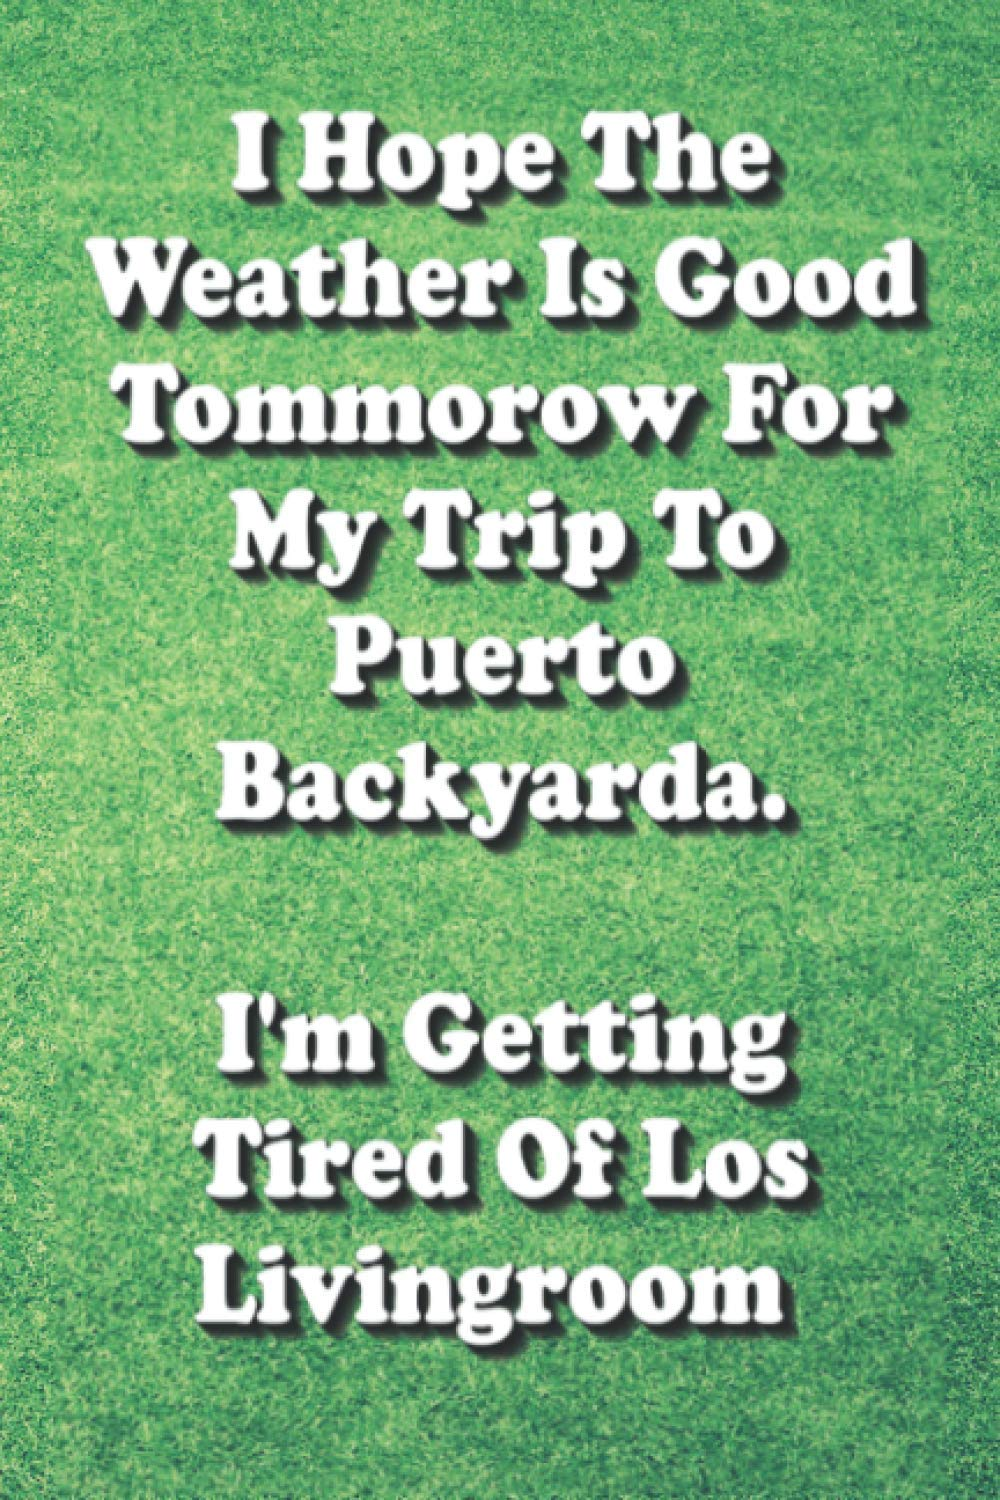 I Hope The Weather is Good Tomorrow For My Trip To Puerto Backyarda. I'm Tired of Los Livingroom: 2020 2021 Funny Sarcasm Quarantine Journal and Daily ... Toilet Paper Humor and Home Schooling